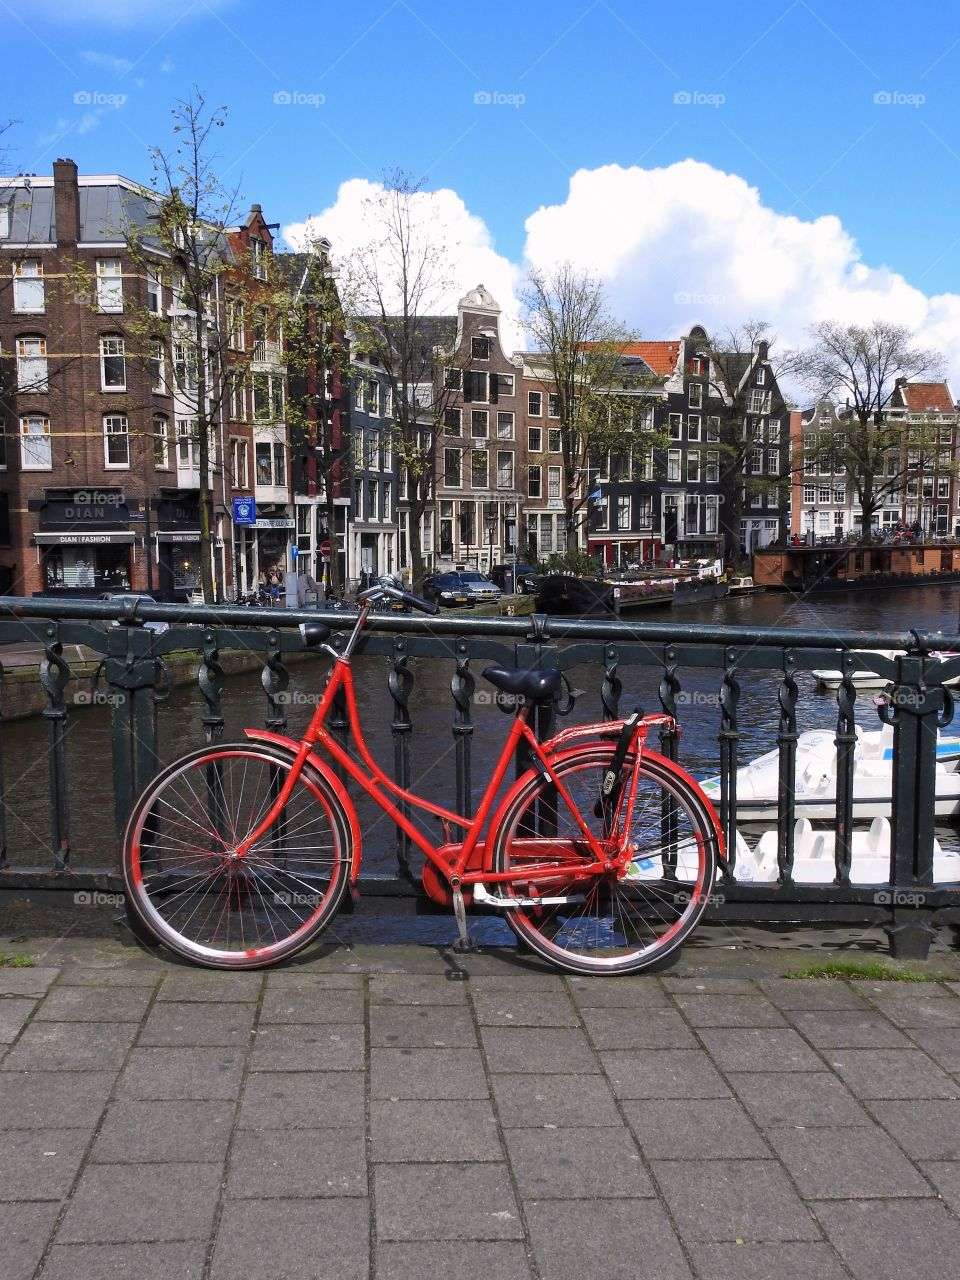 Red bike by a canal in Amsterdam